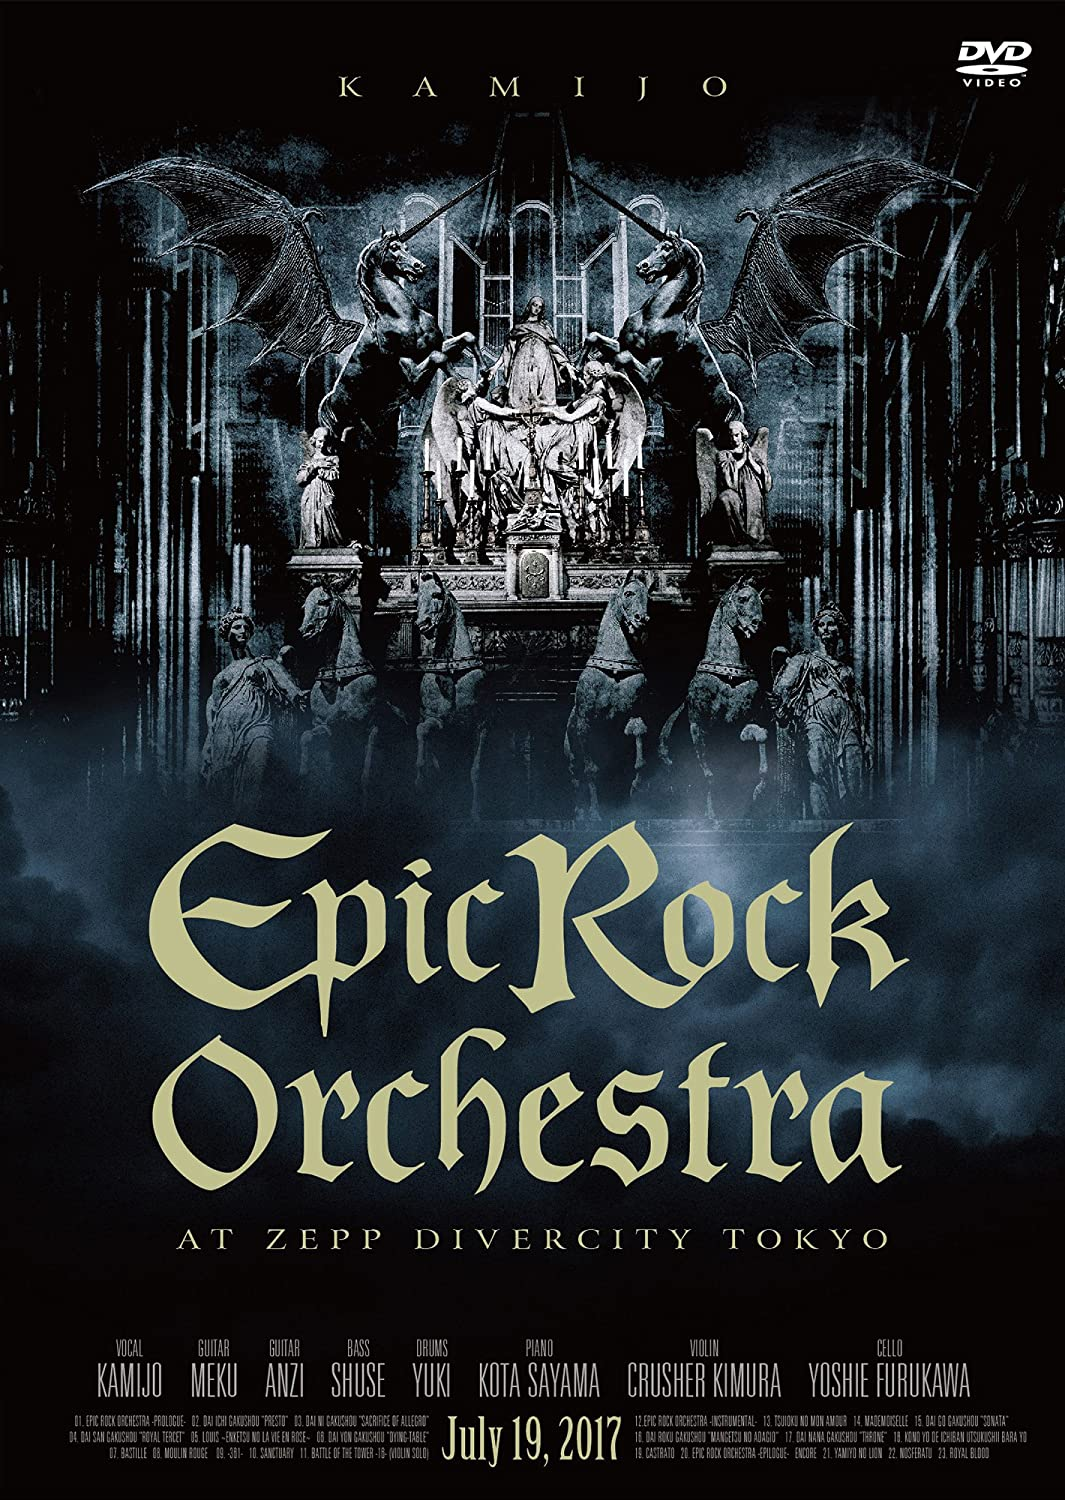 Epic Rock Orchestra at Zepp DiverCity Tokyo (完全限定盤) [DVD] B077FZXH3N